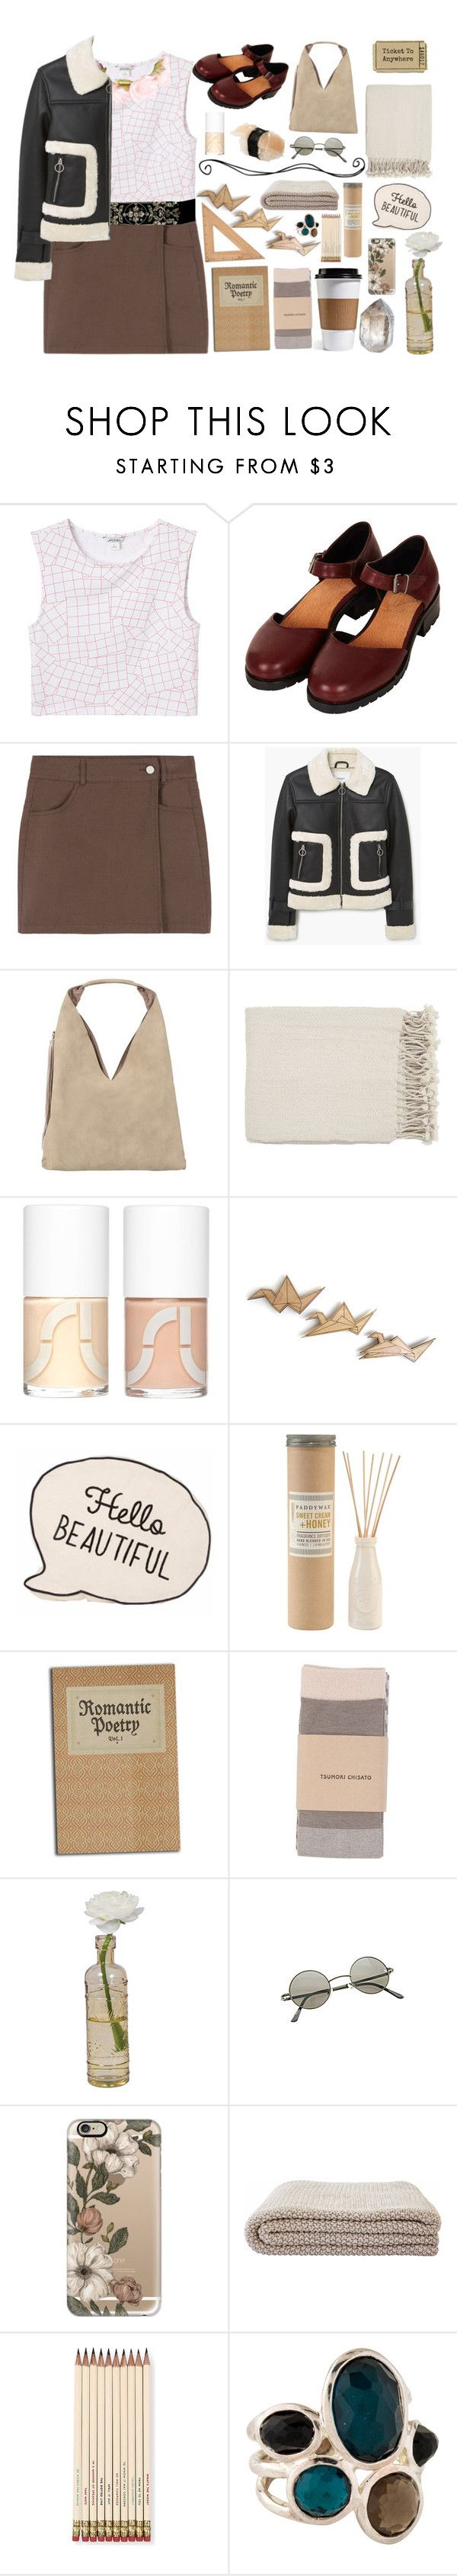 """""""Untitled #352"""" by mcgoddess2 ❤ liked on Polyvore featuring Monki, Topshop, MANGO, INZI, Surya, Uslu Airlines, Paddywax, Tsumori Chisato, Cultural Intrigue and Ardene"""